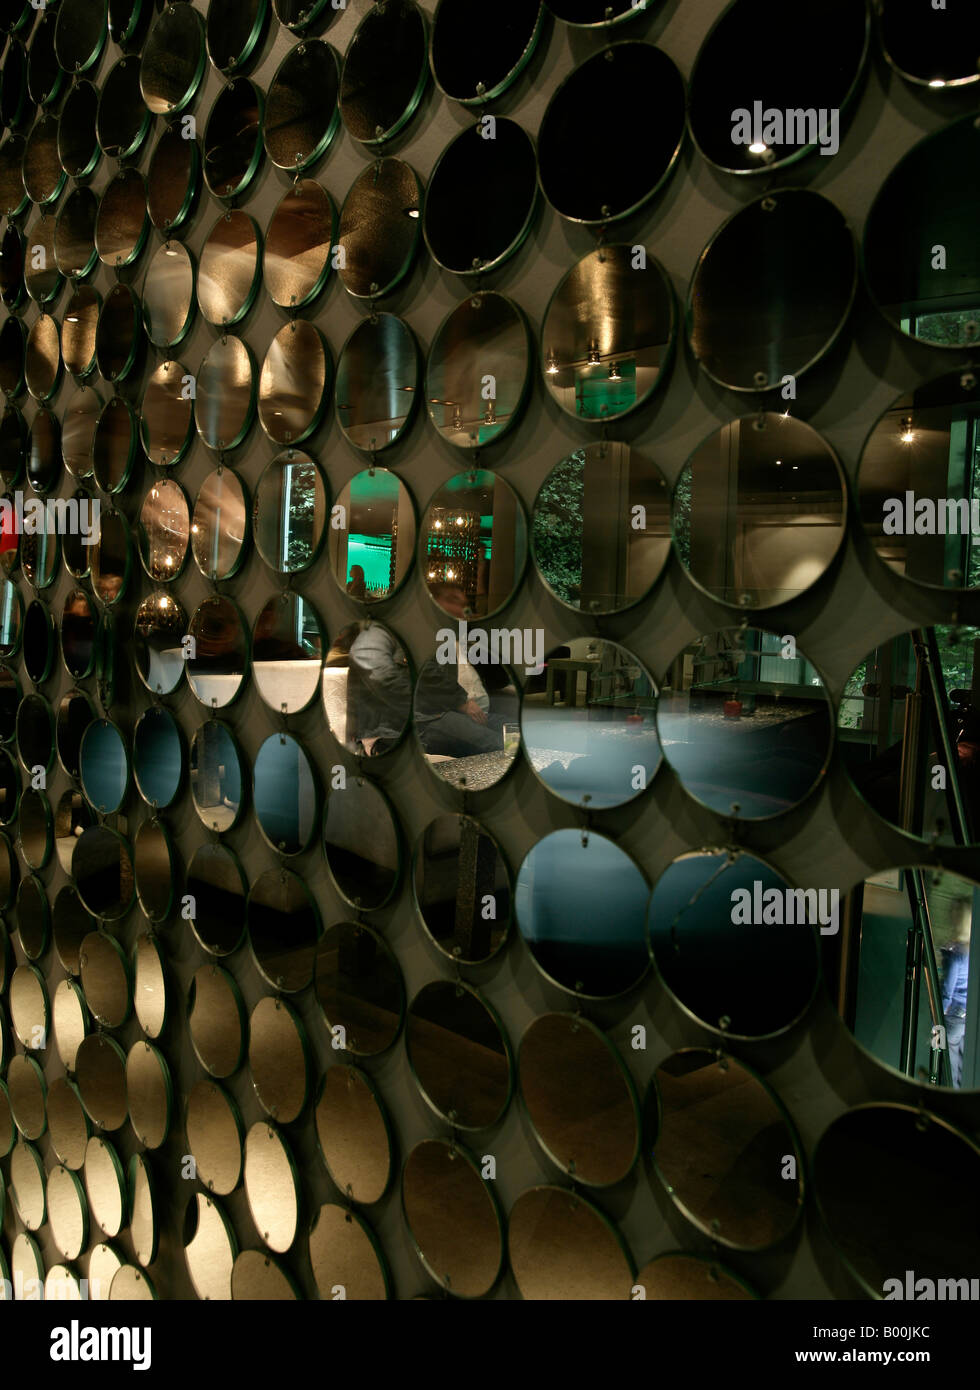 Mirrors on a wall in a nightclub stock photo royalty free image mirrors on a wall in a nightclub amipublicfo Gallery